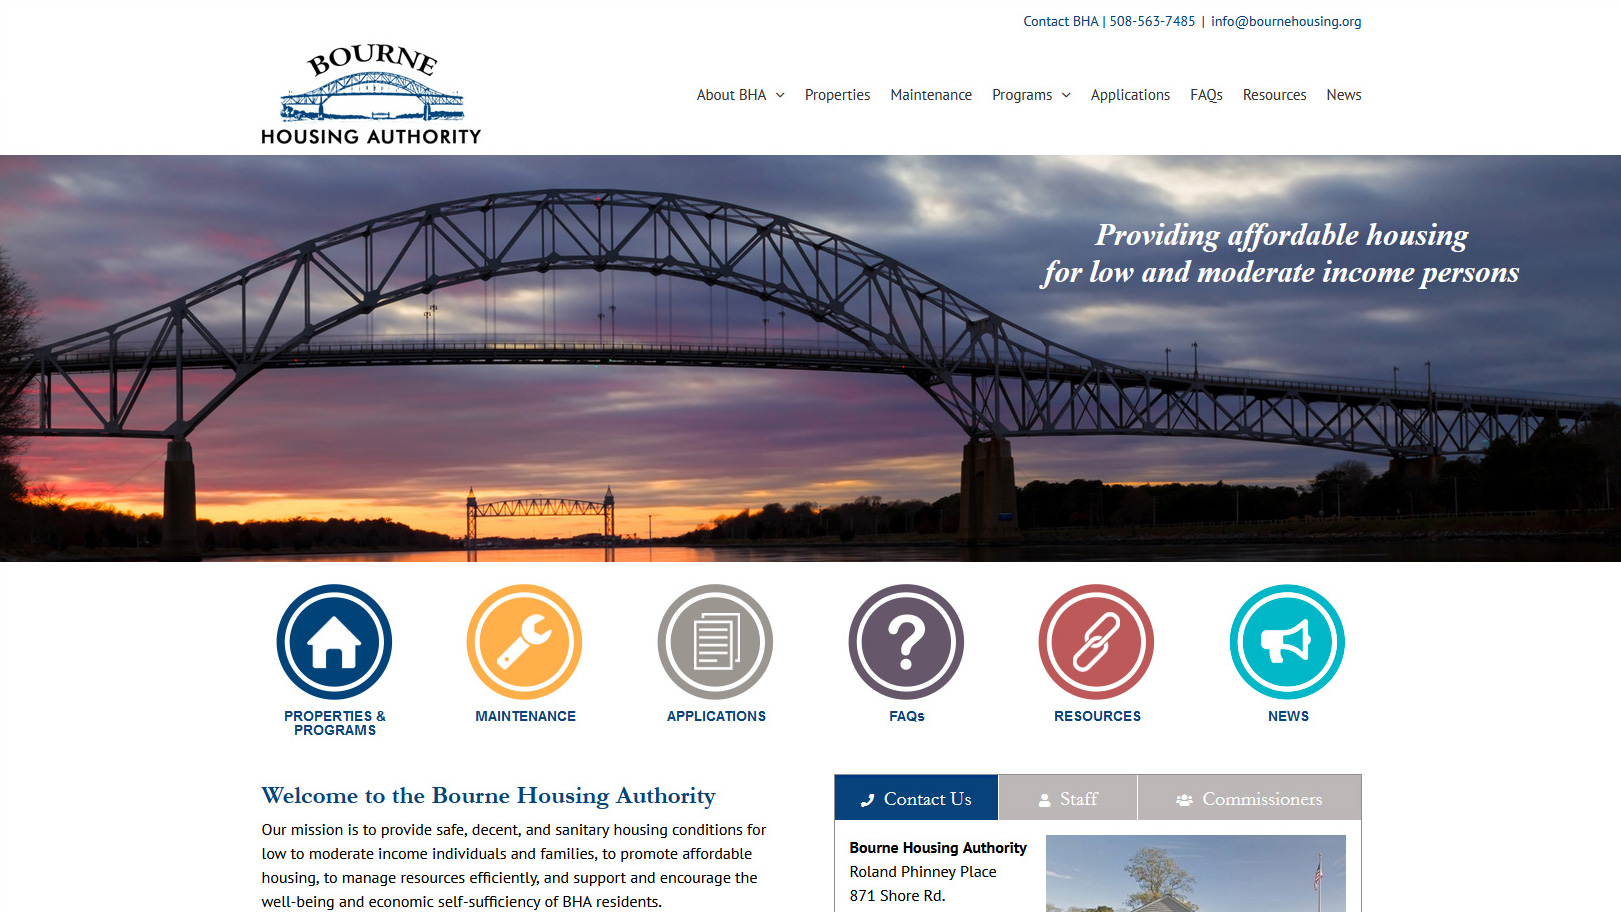 Portfolio Bourne Housing Authority website design